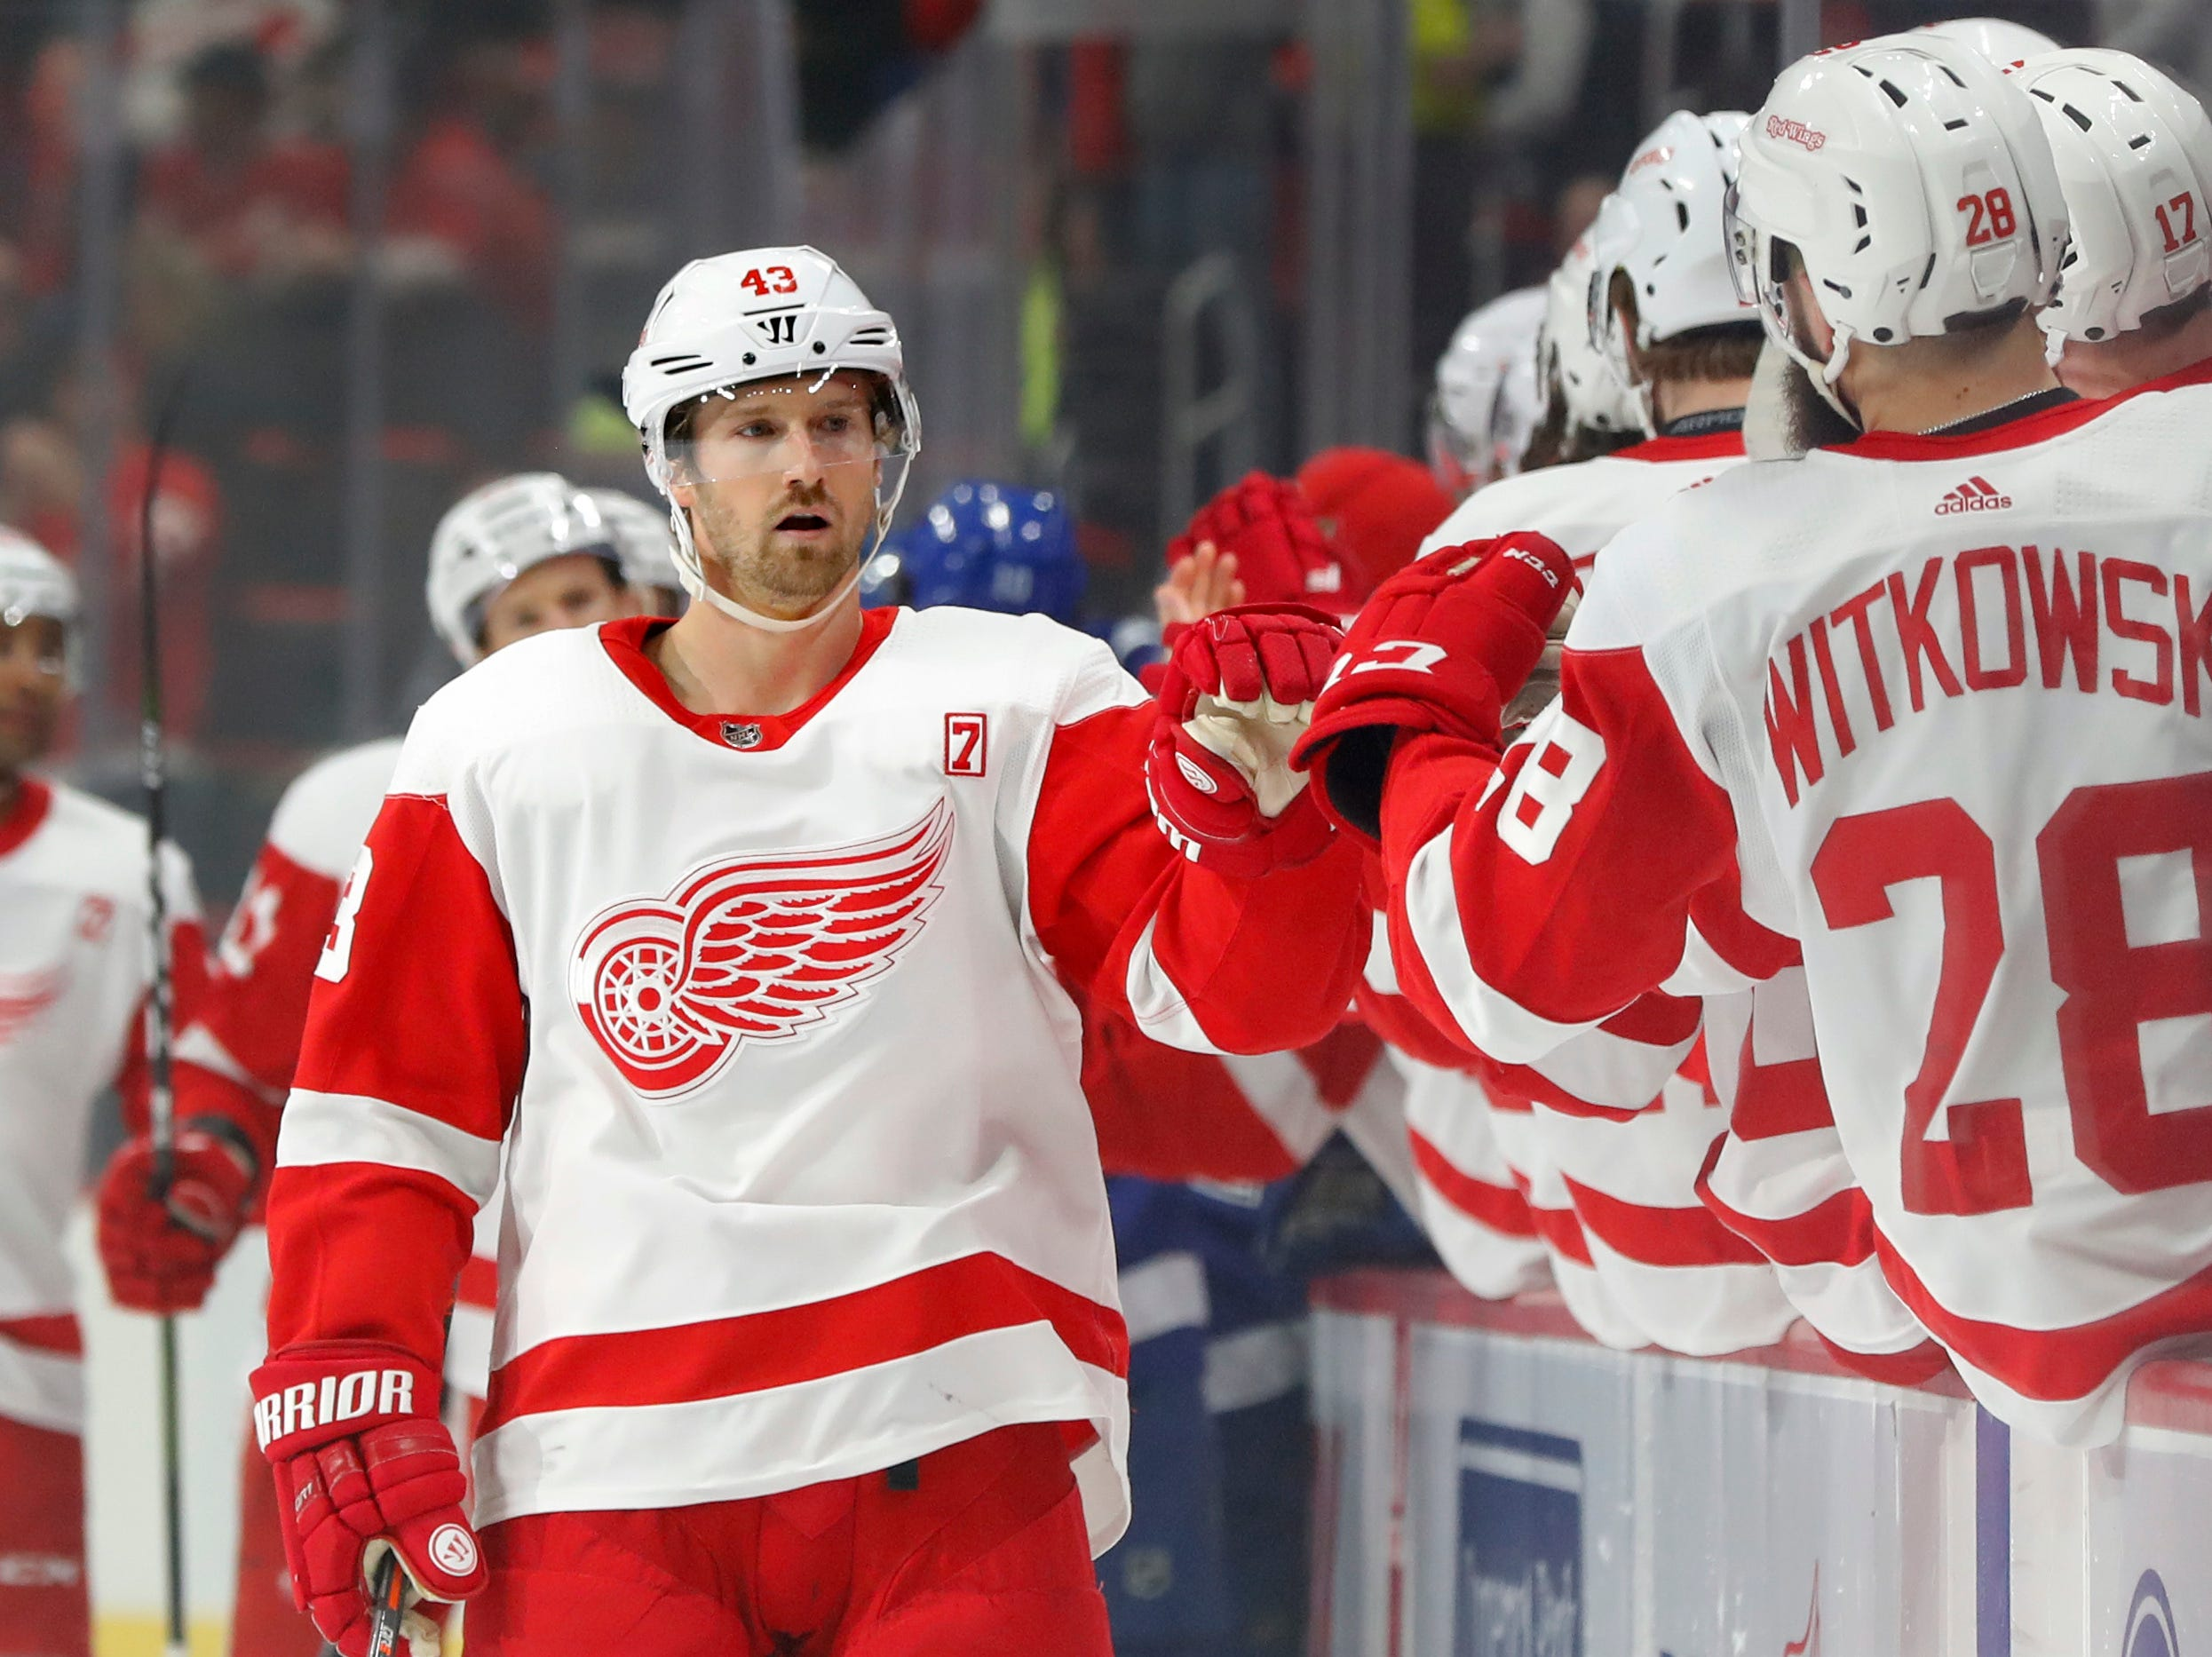 Detroit Red Wings' Darren Helm celebrates his goal against the Tampa Bay Lightning in the first period.